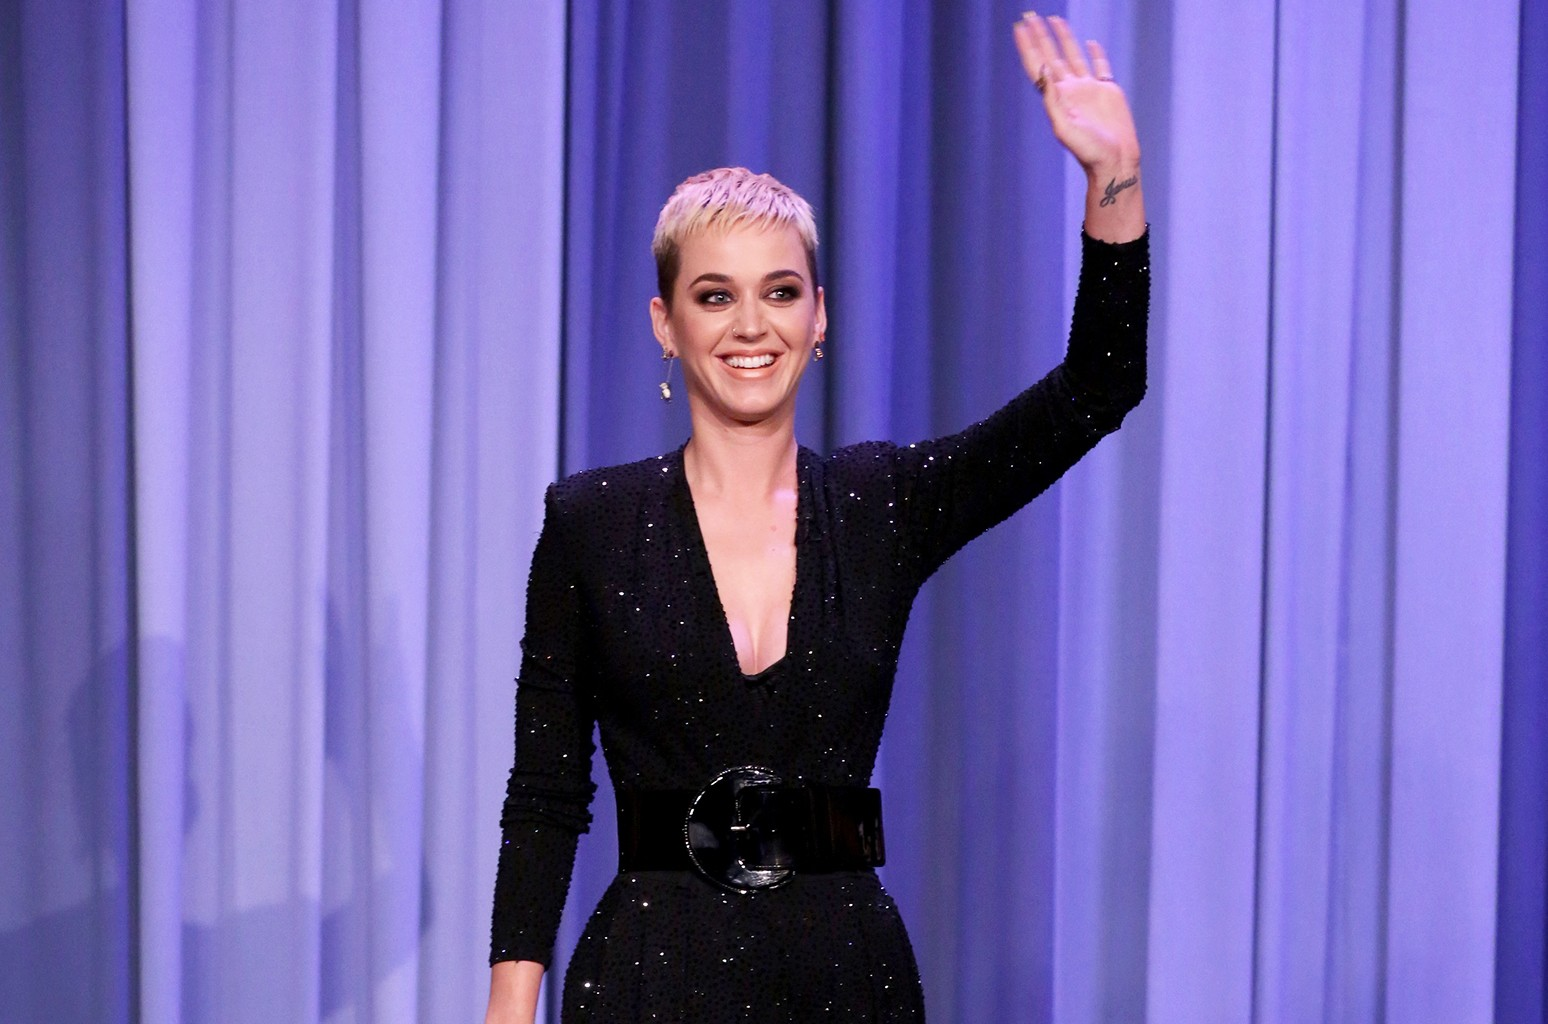 Katy Perry on The Tonight Show Starring Jimmy Fallon on May 19, 2017.